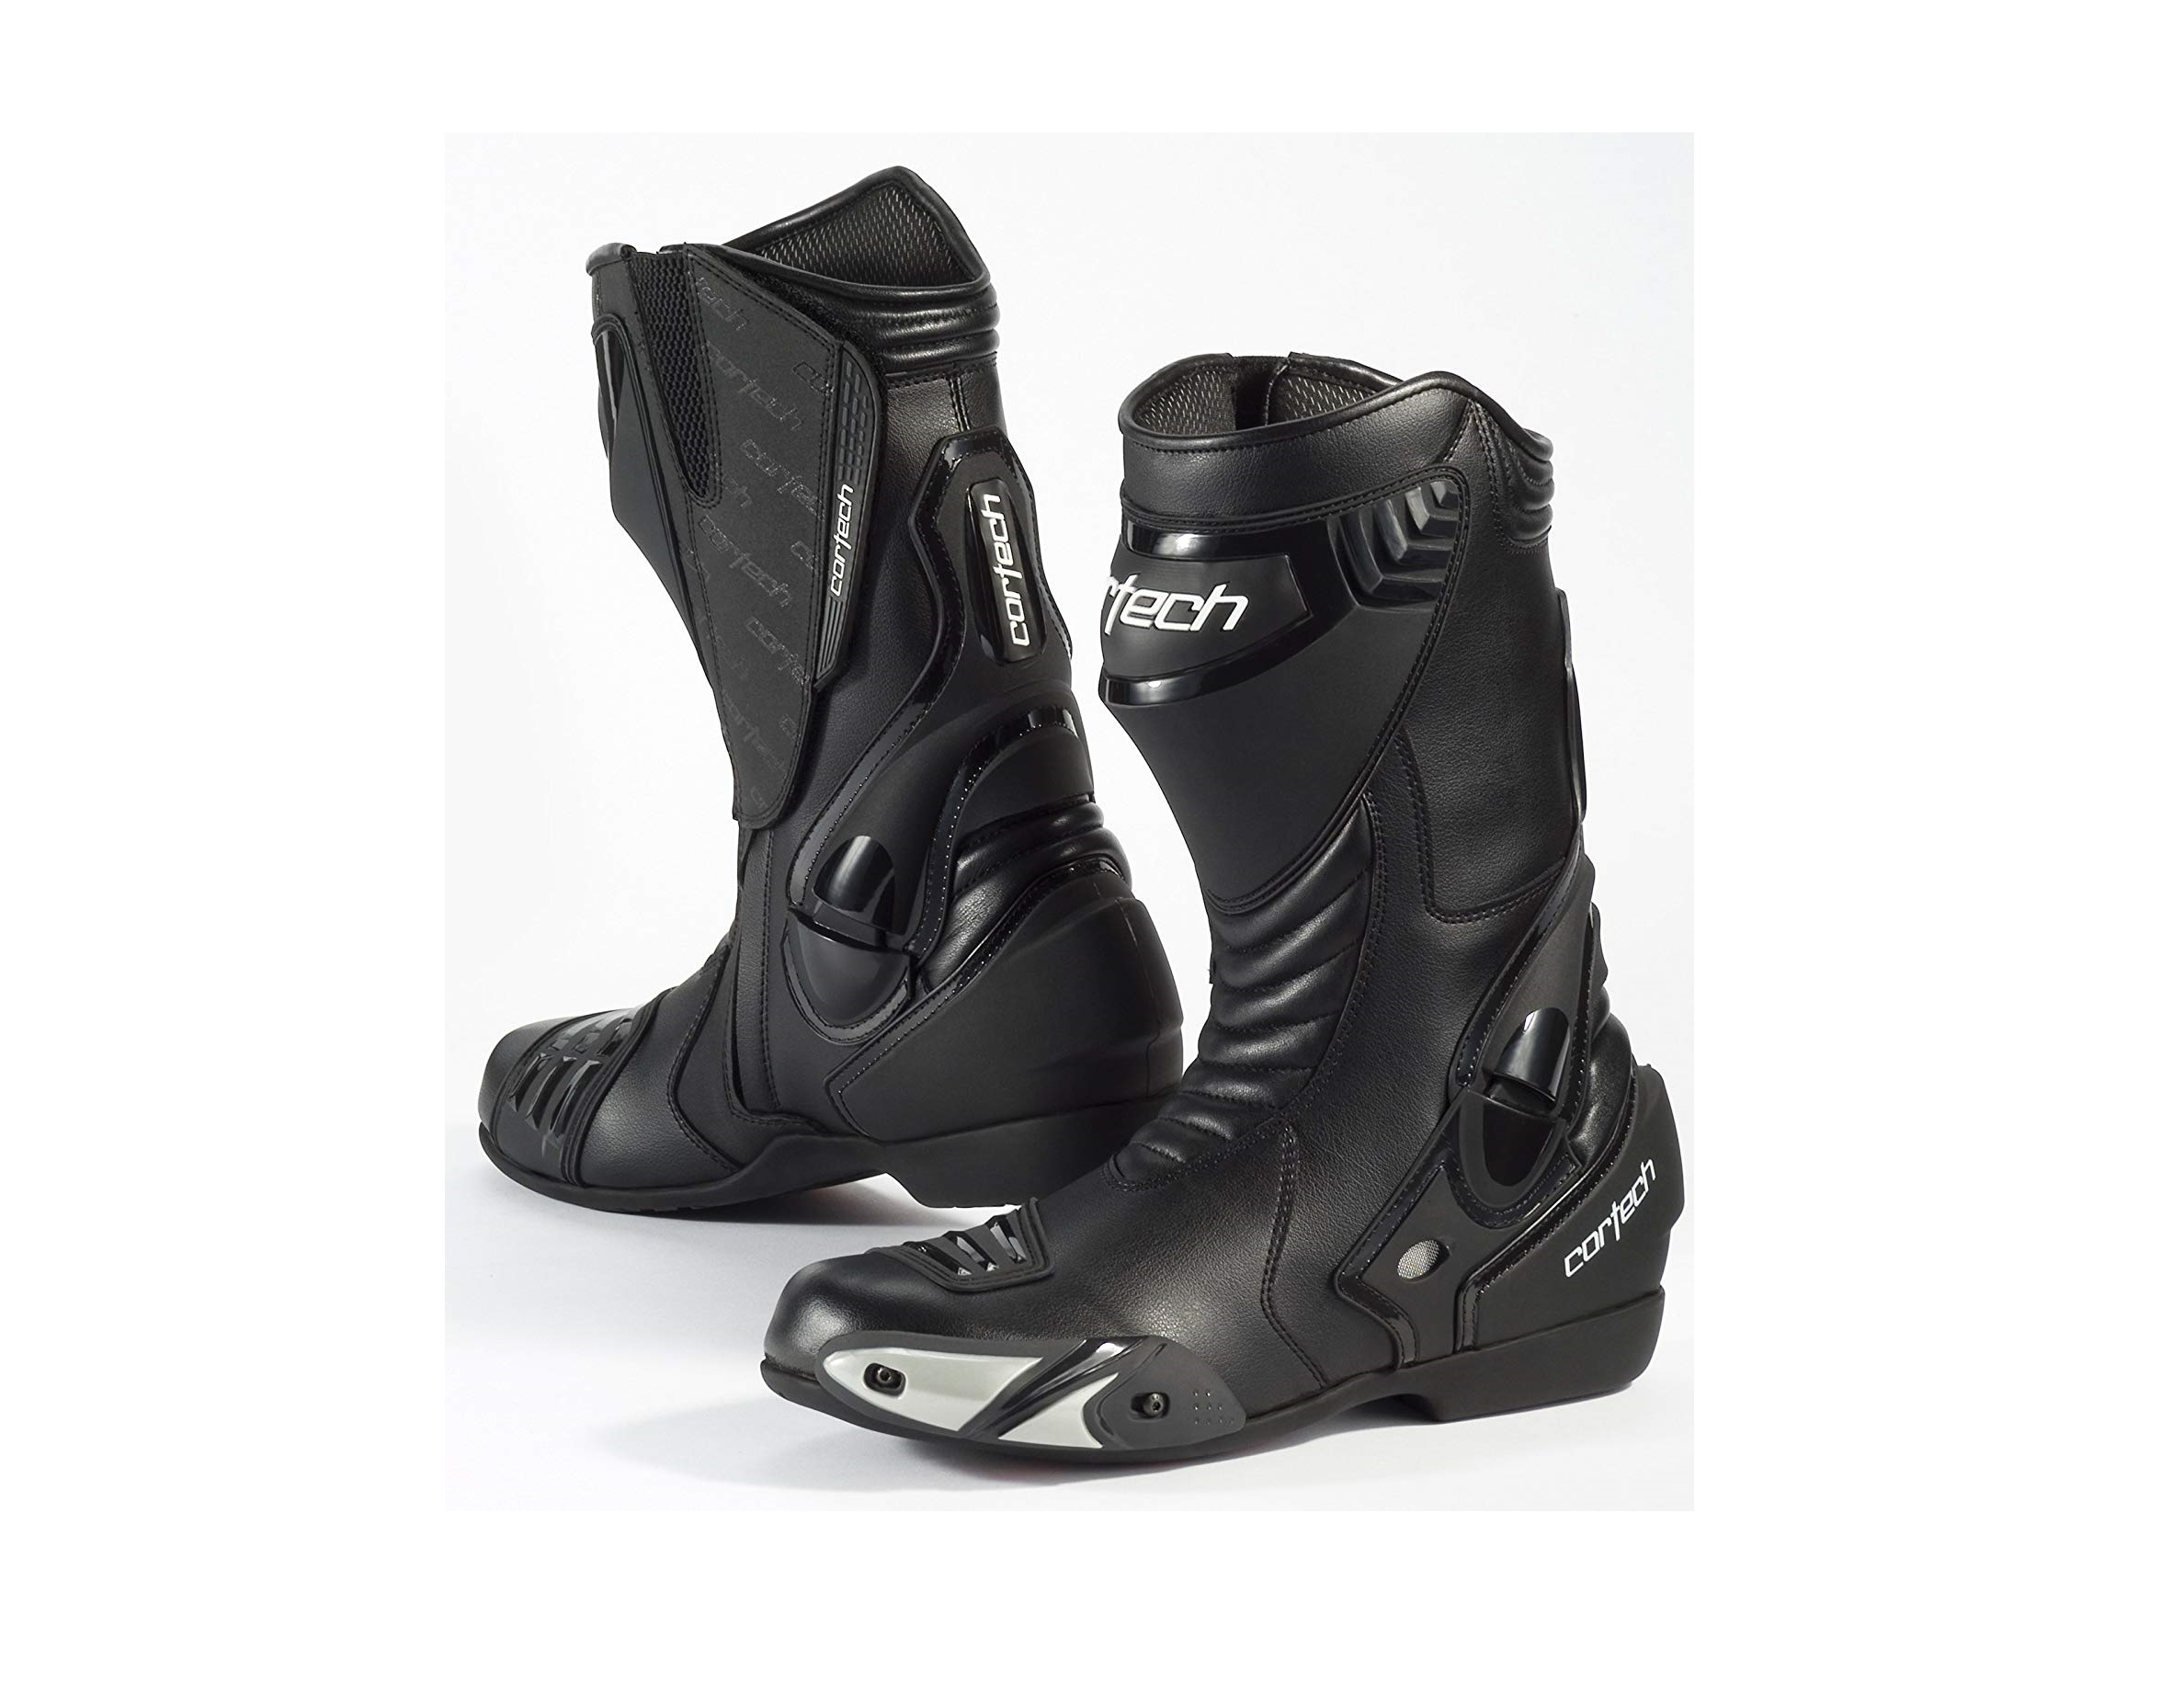 Top 5 Best Motorcycle Boots Review of 2020